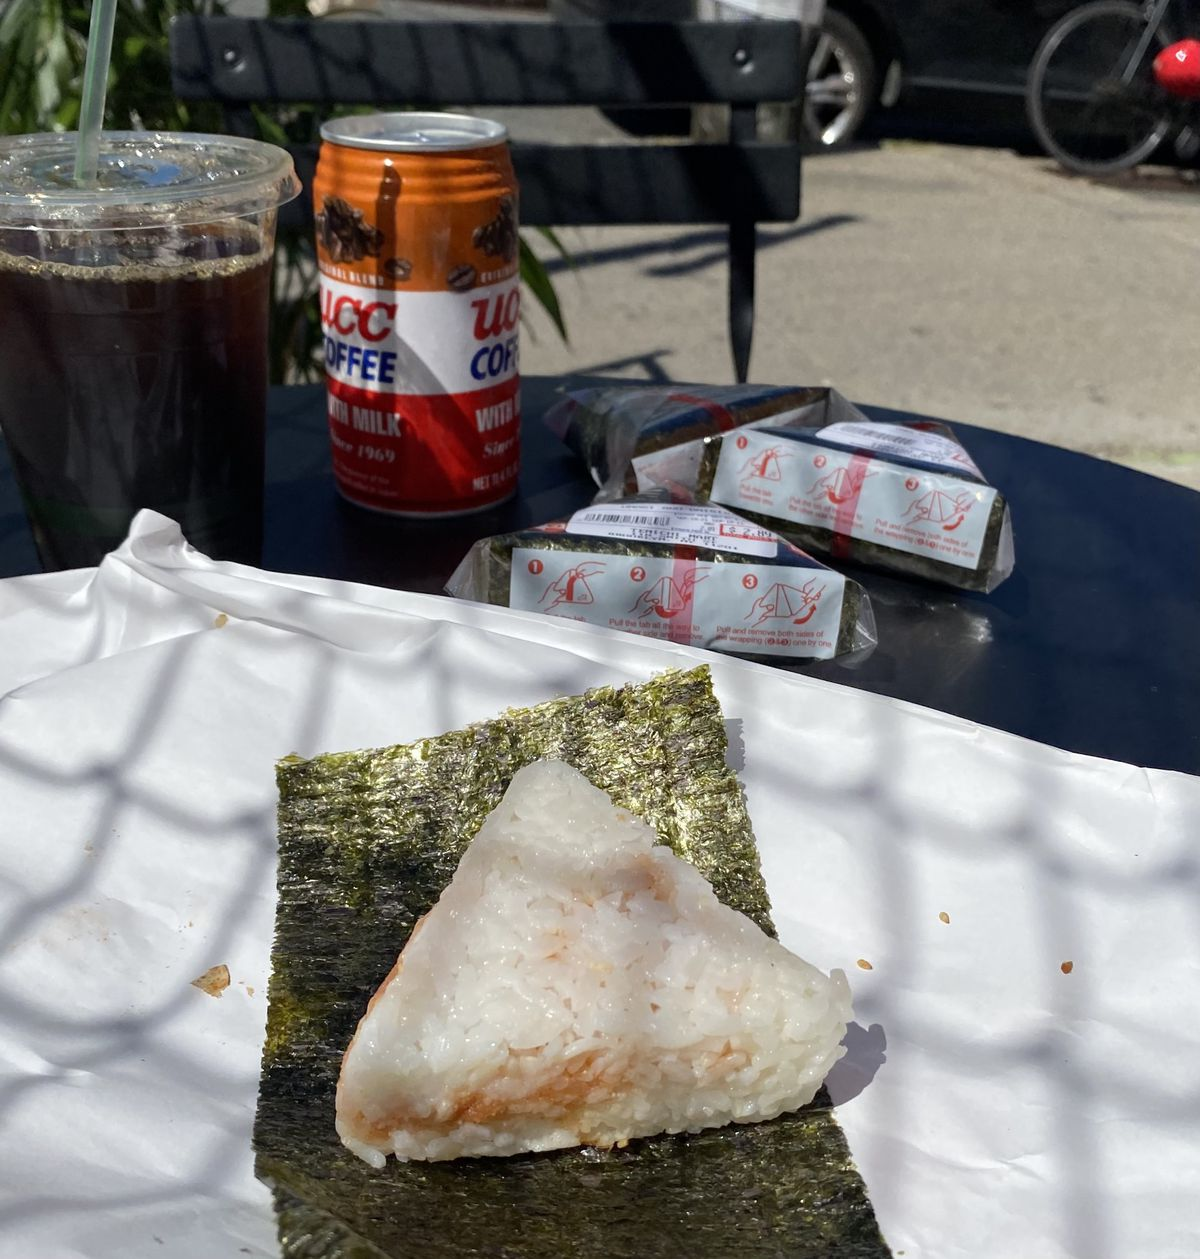 A triangular piece of onigiri rests on a piece of seaweed on a paper bag. In the background, three additional onigiri sit beside an iced coffee.